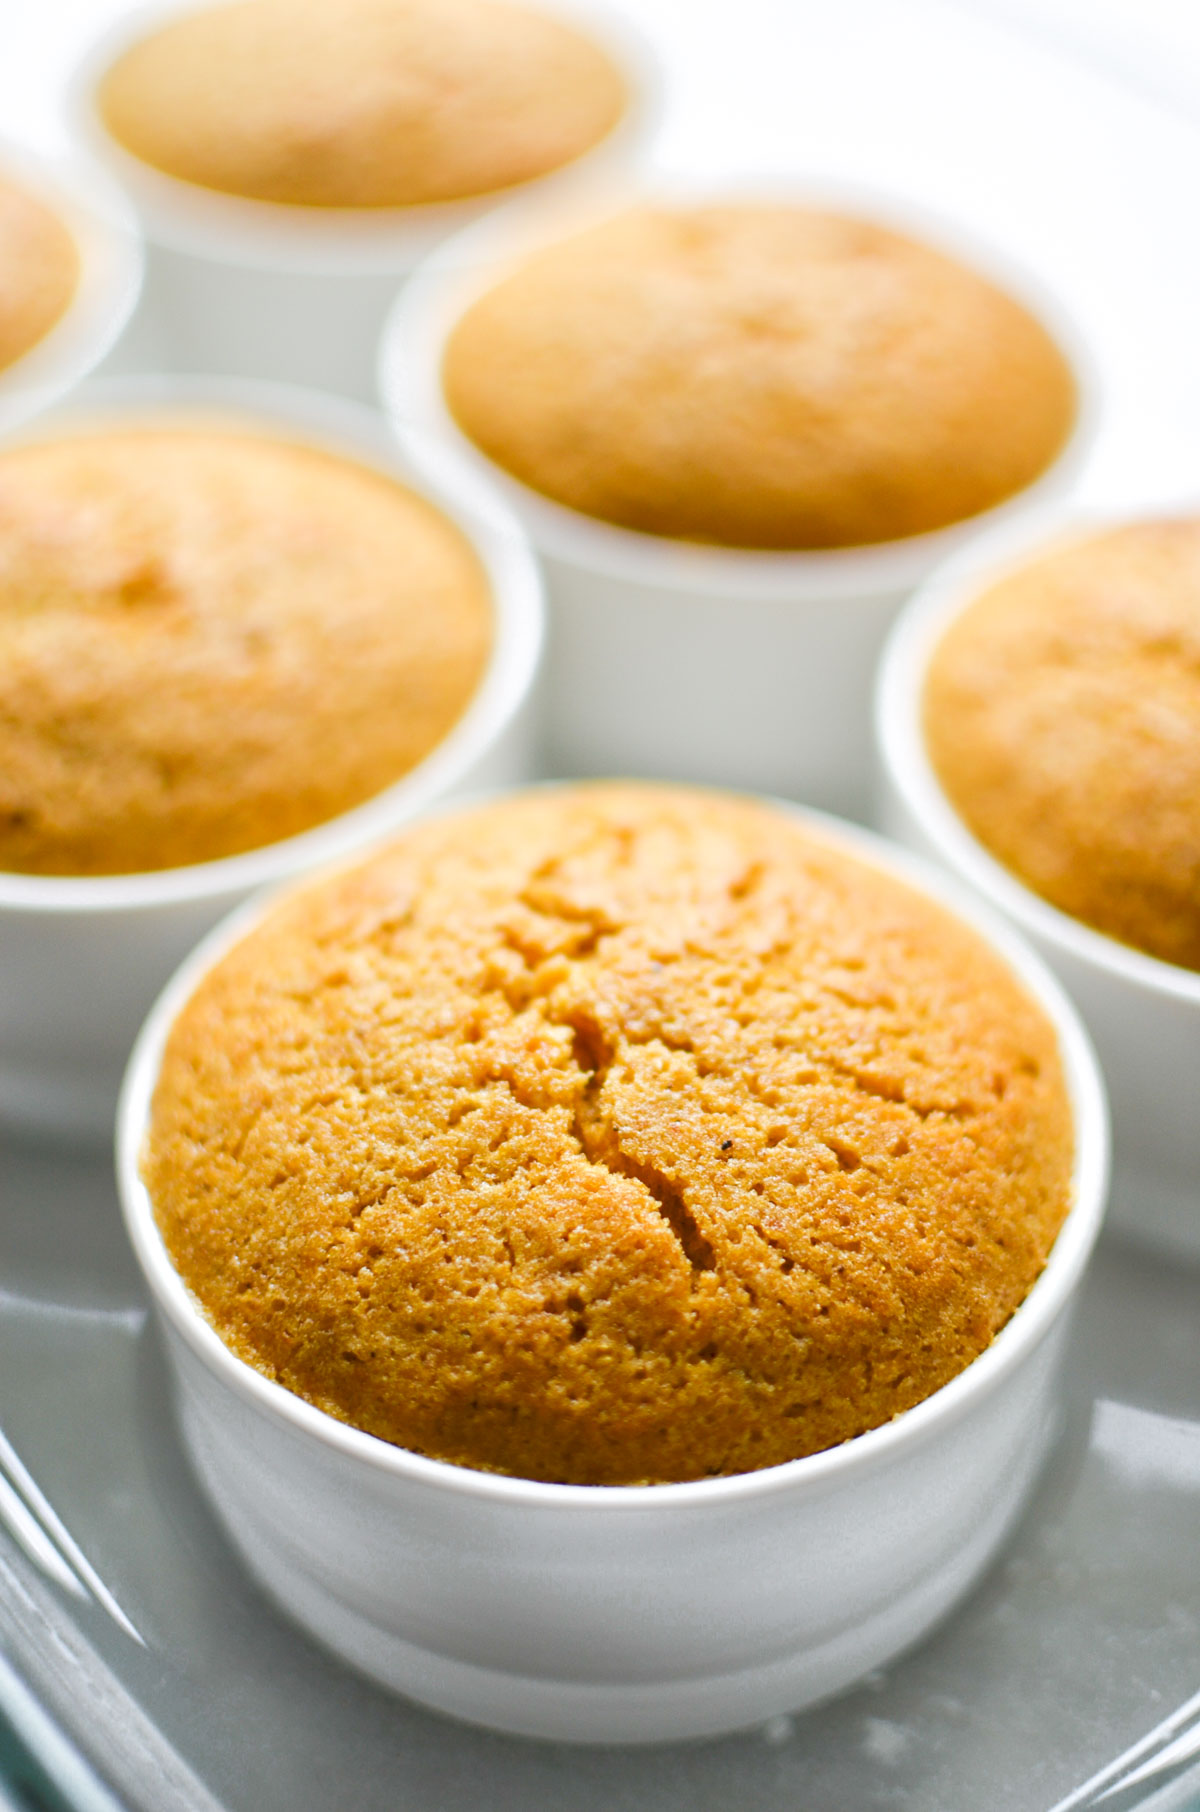 warm pumpkin pudding cakes just out of the oven